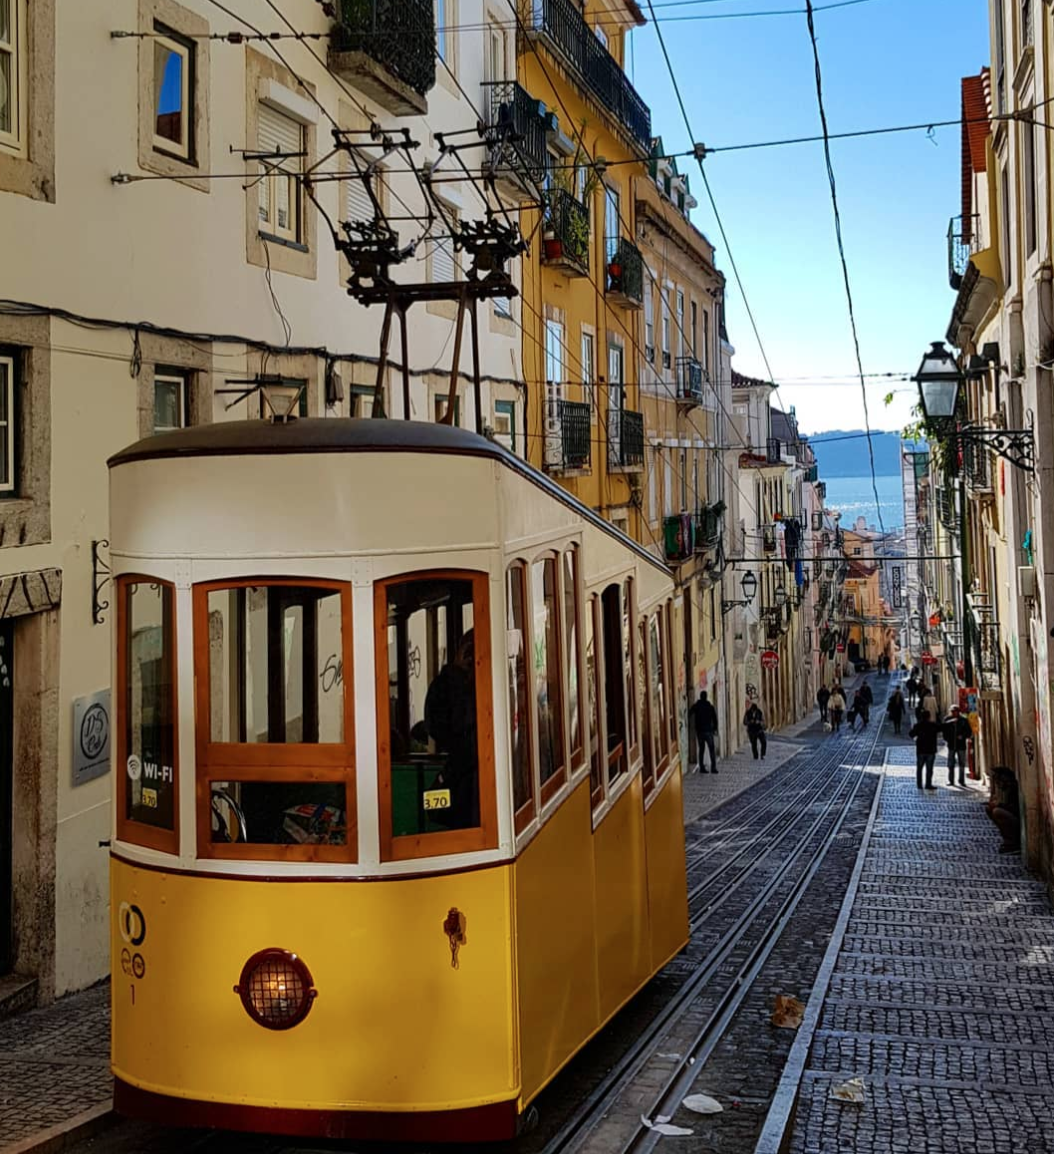 21 Reason to Visit Lisbon In 2019